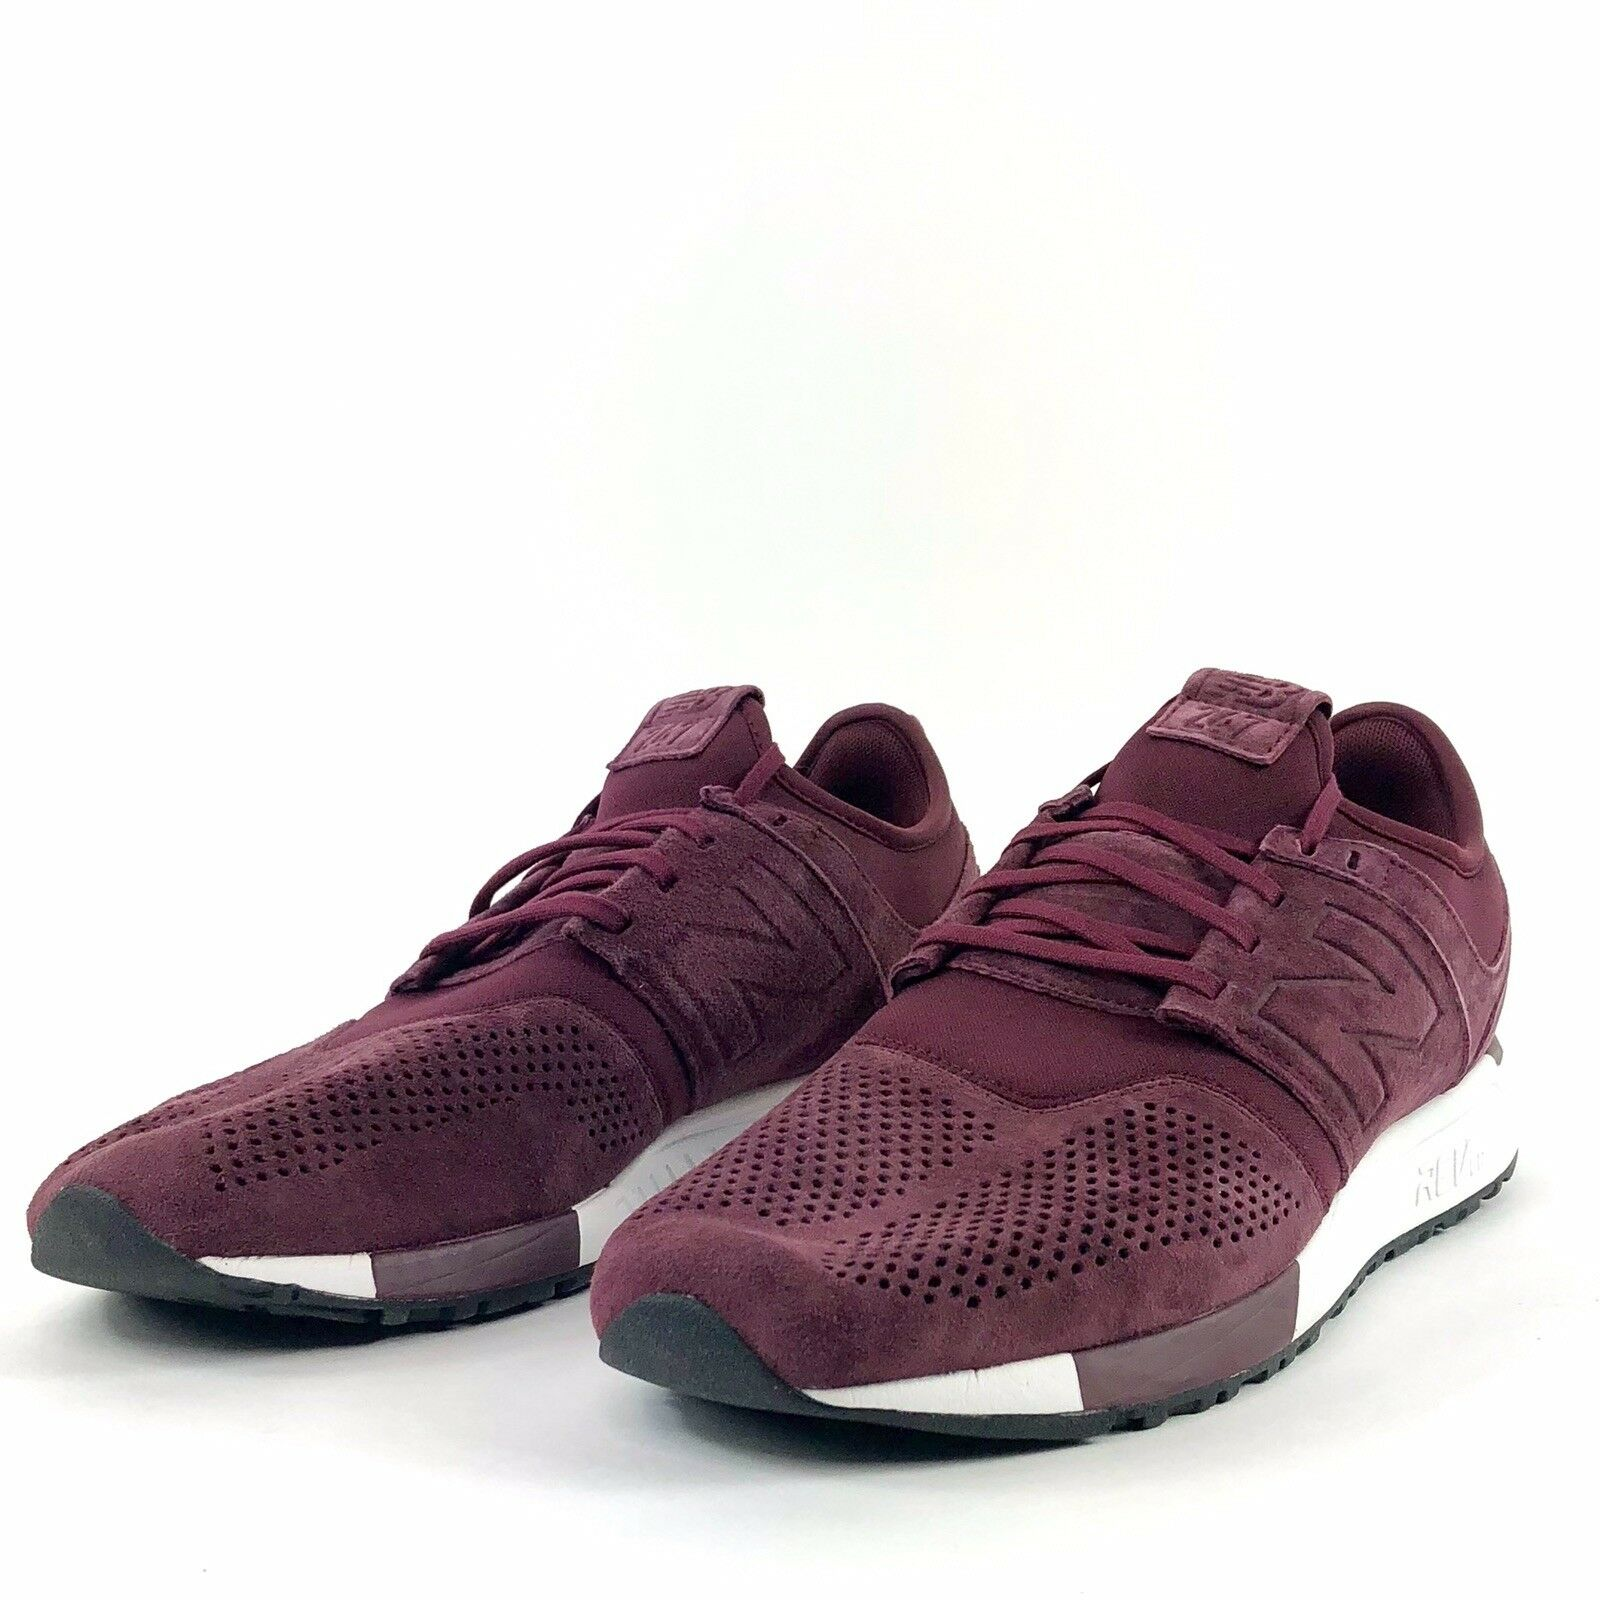 ec873c01b5 New Balance 247 MRL247LR Red White Suede Men Size 11.5 Maroon ...